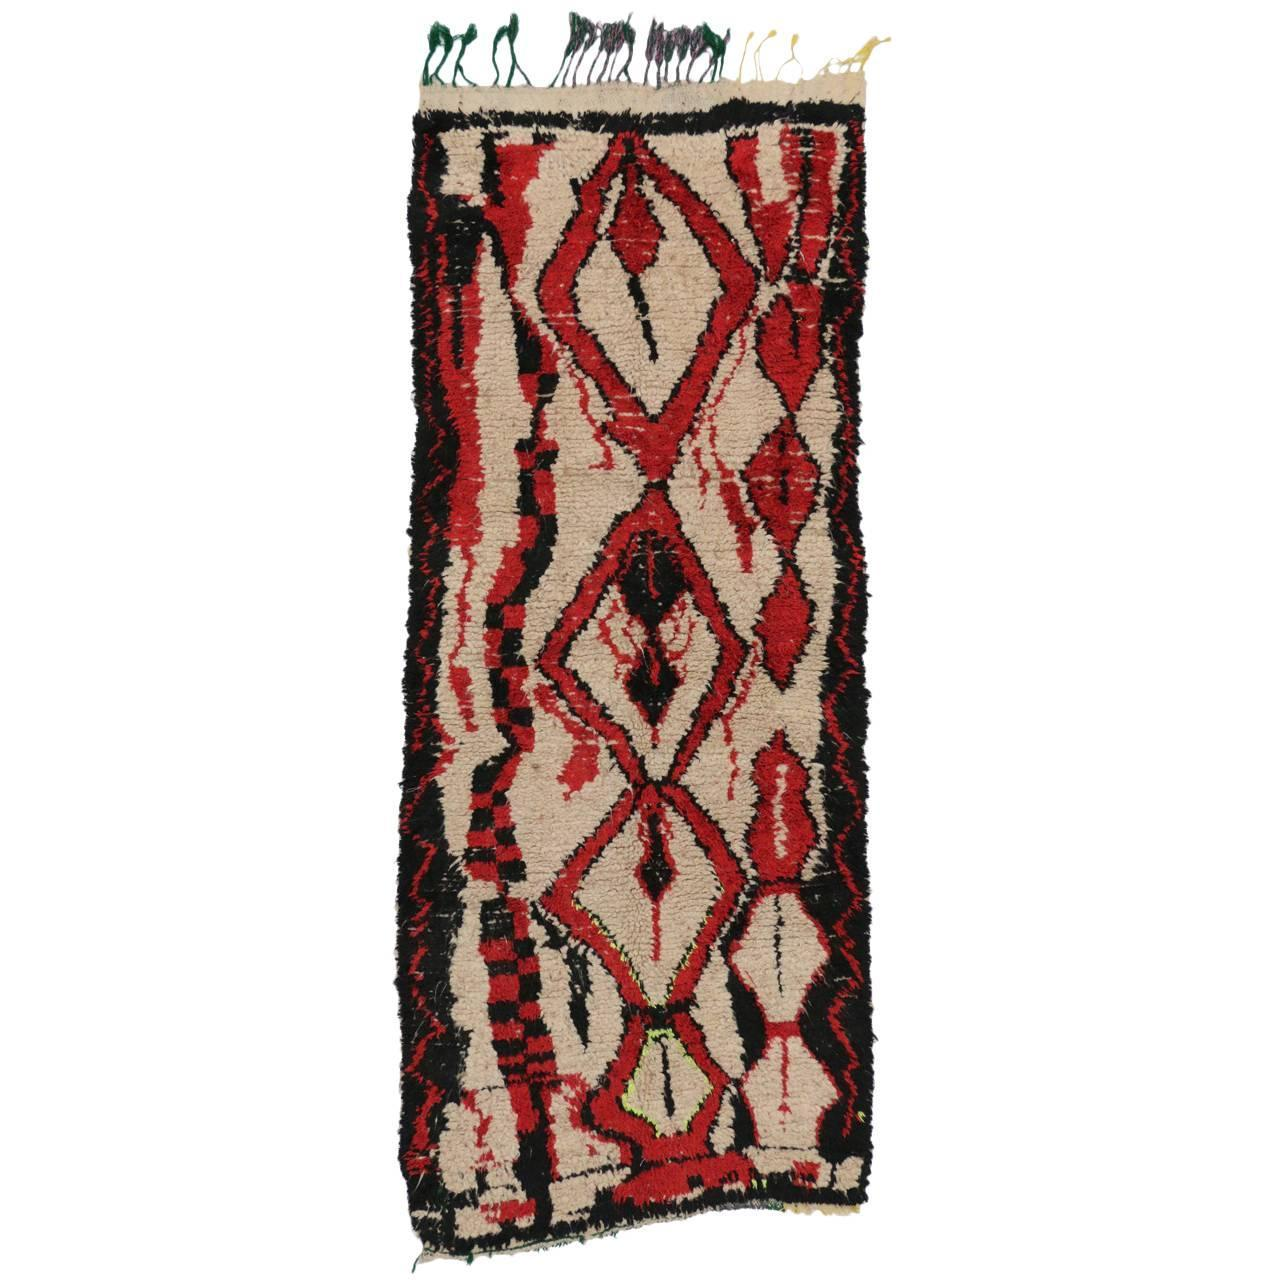 Mid Century Modern Style Red Berber Moroccan Rug With: Mid-Century Modern Berber Moroccan Carpet Runner With